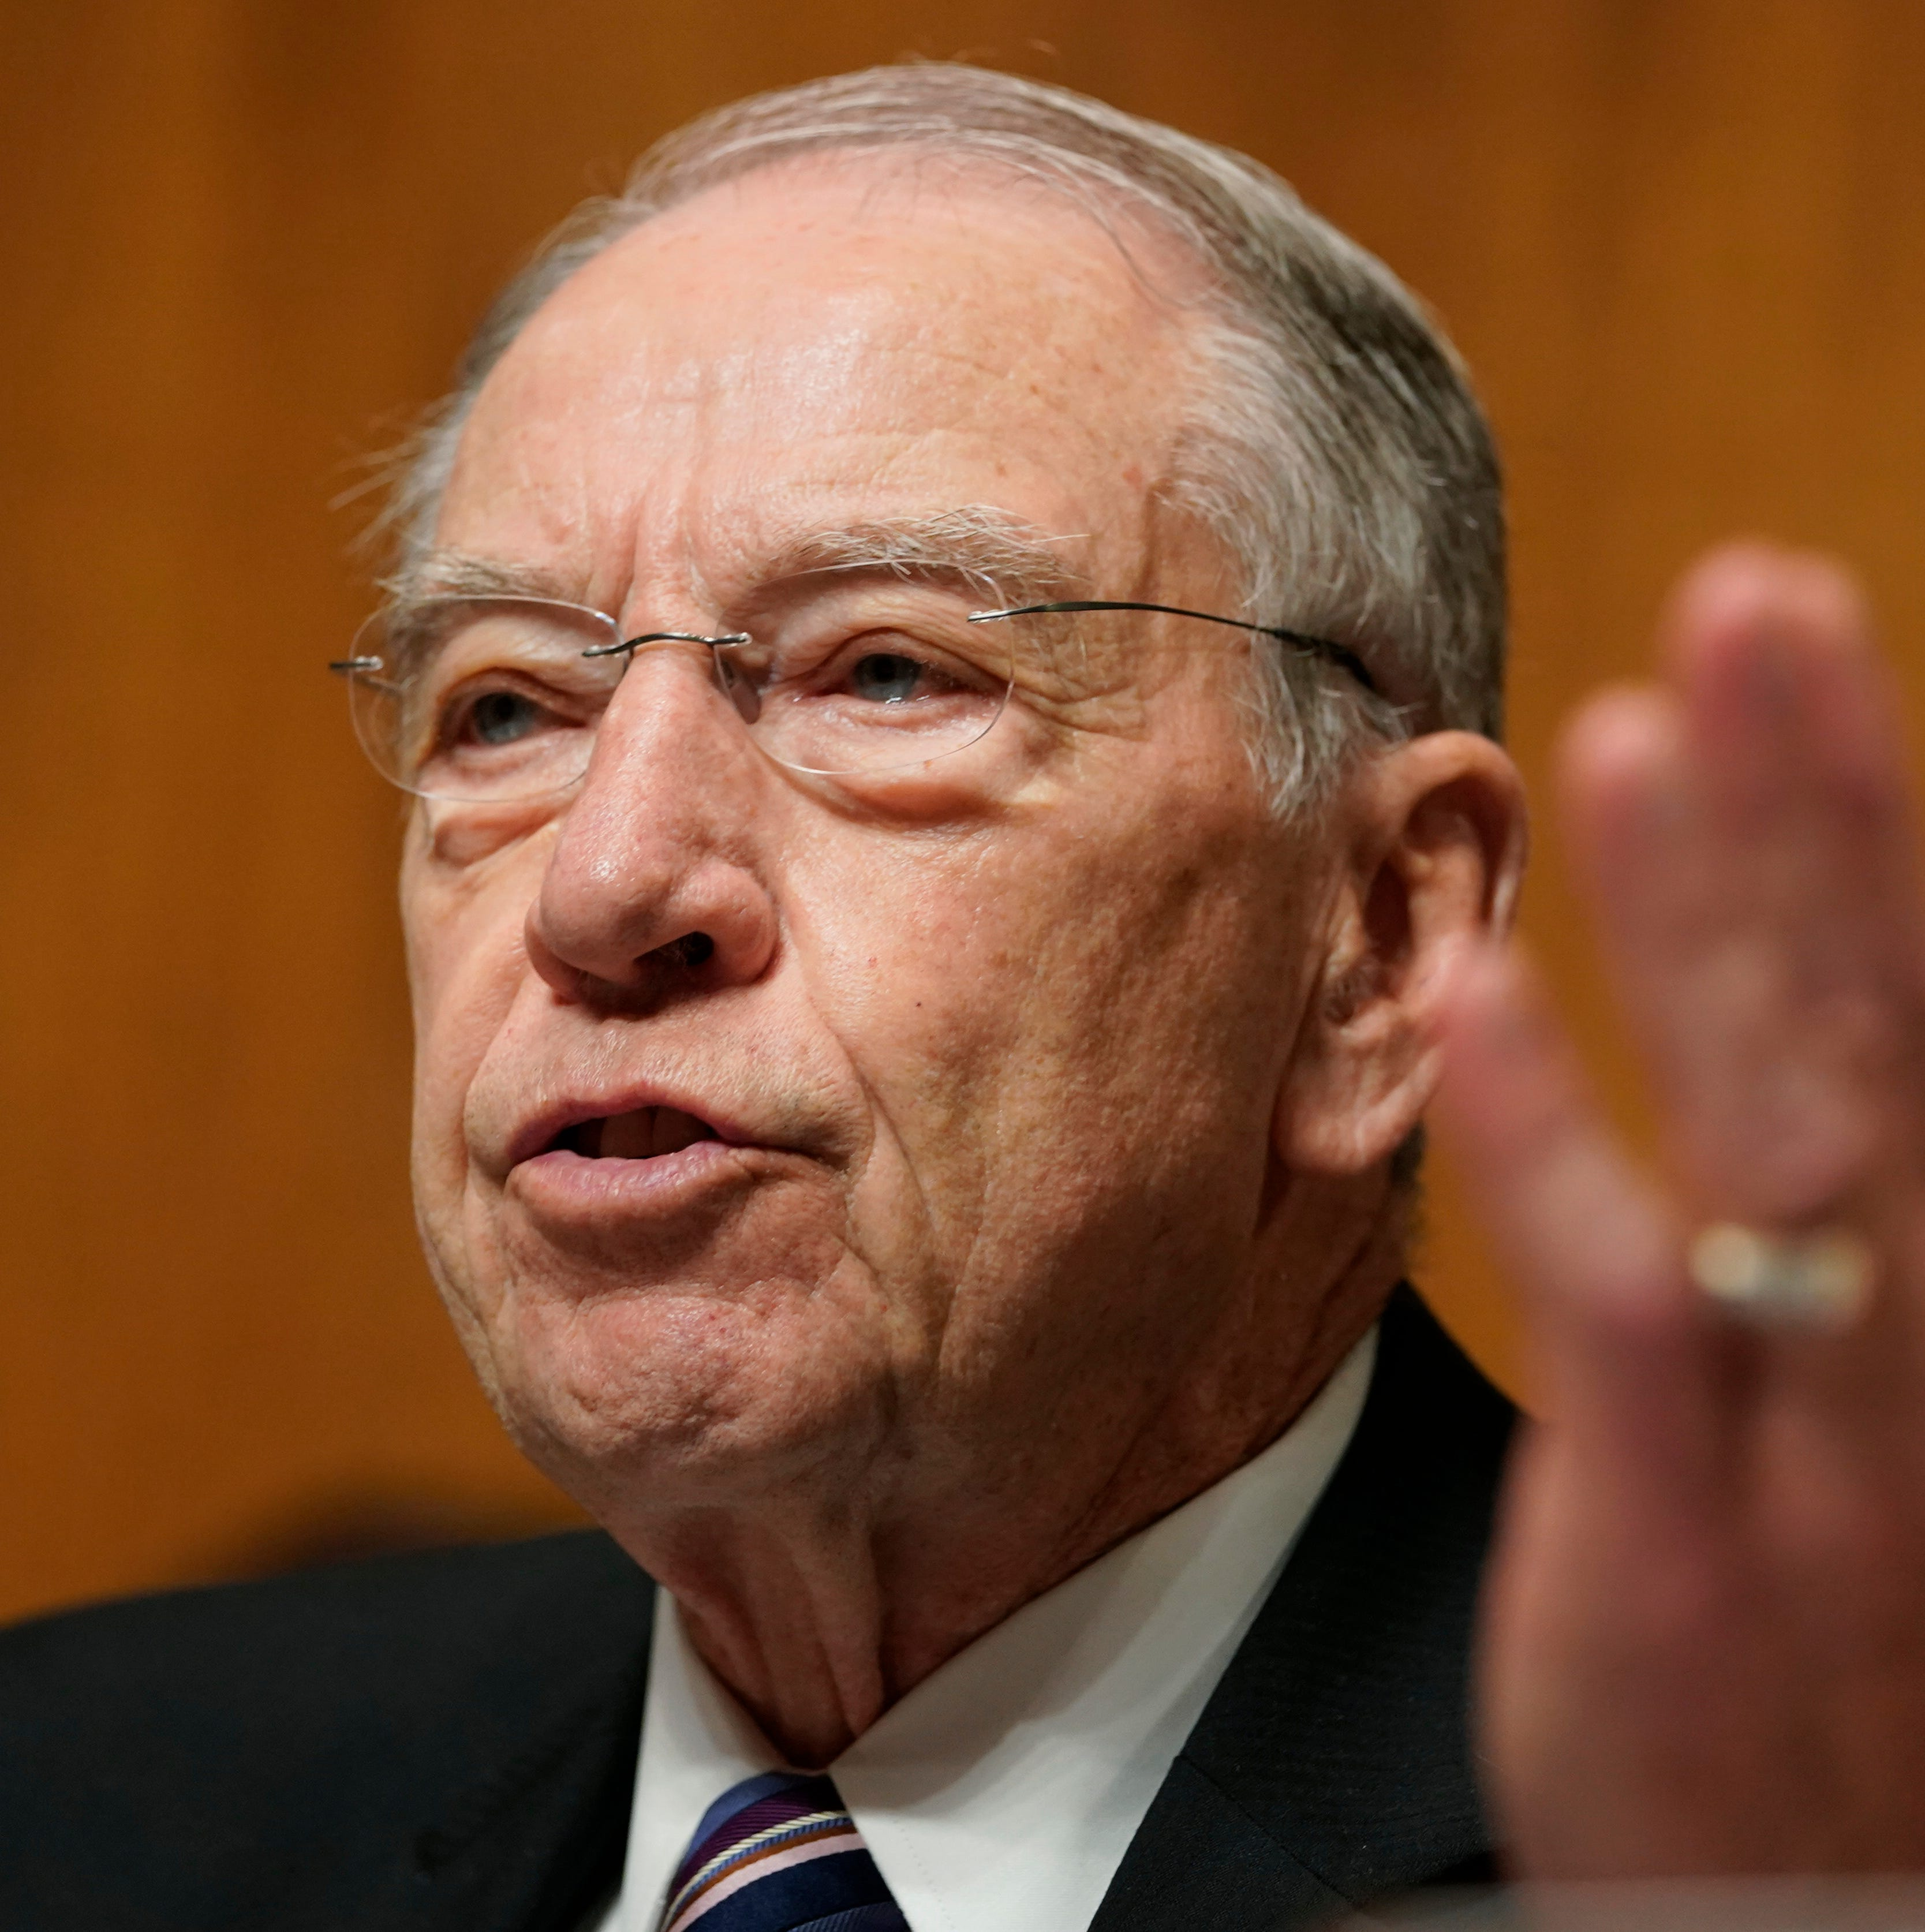 Sen. Chuck Grassley, R-Iowa, speaks during a hearing with Christine Blasey Ford at the Senate Judiciary Committee on Capitol Hill in Washington, Thursday, Sept. 27, 2018.